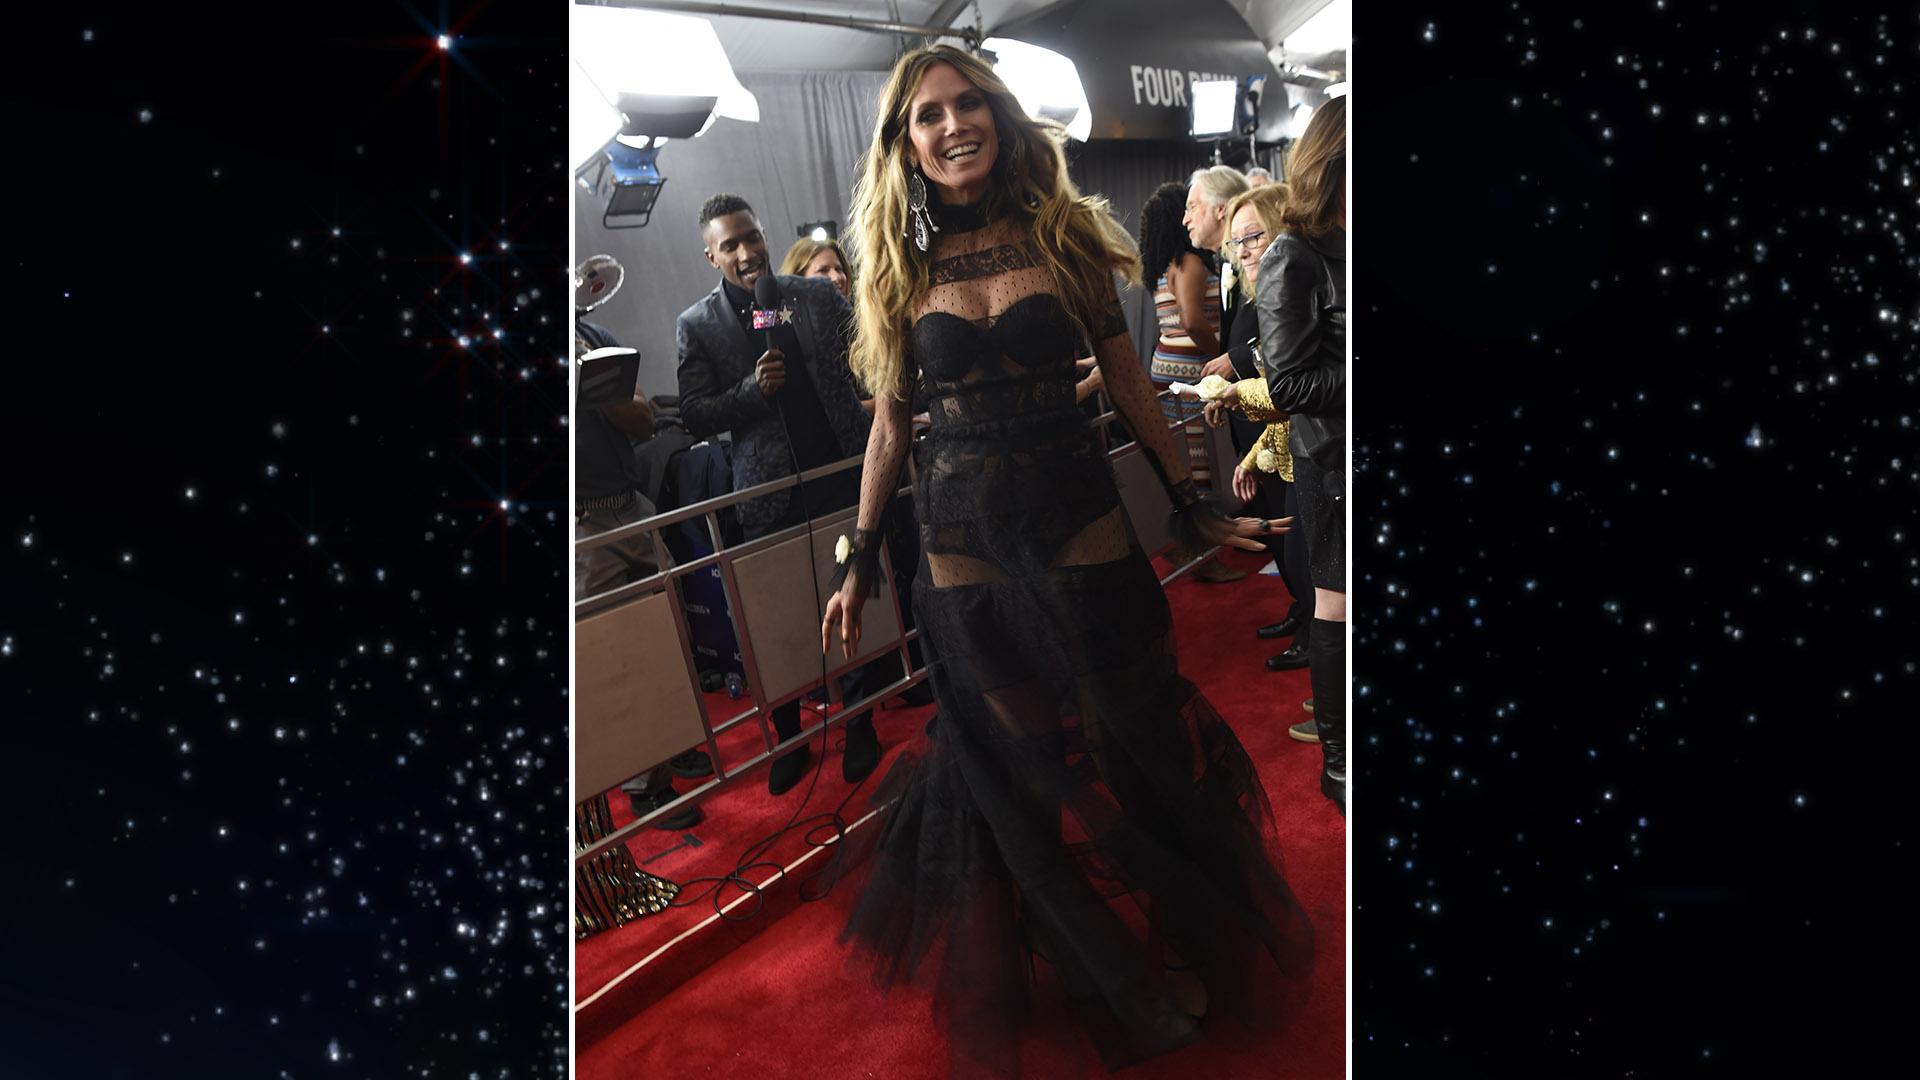 Model and TV personality Heidi Klum sashays down the red carpet in a see-through black lace gown.